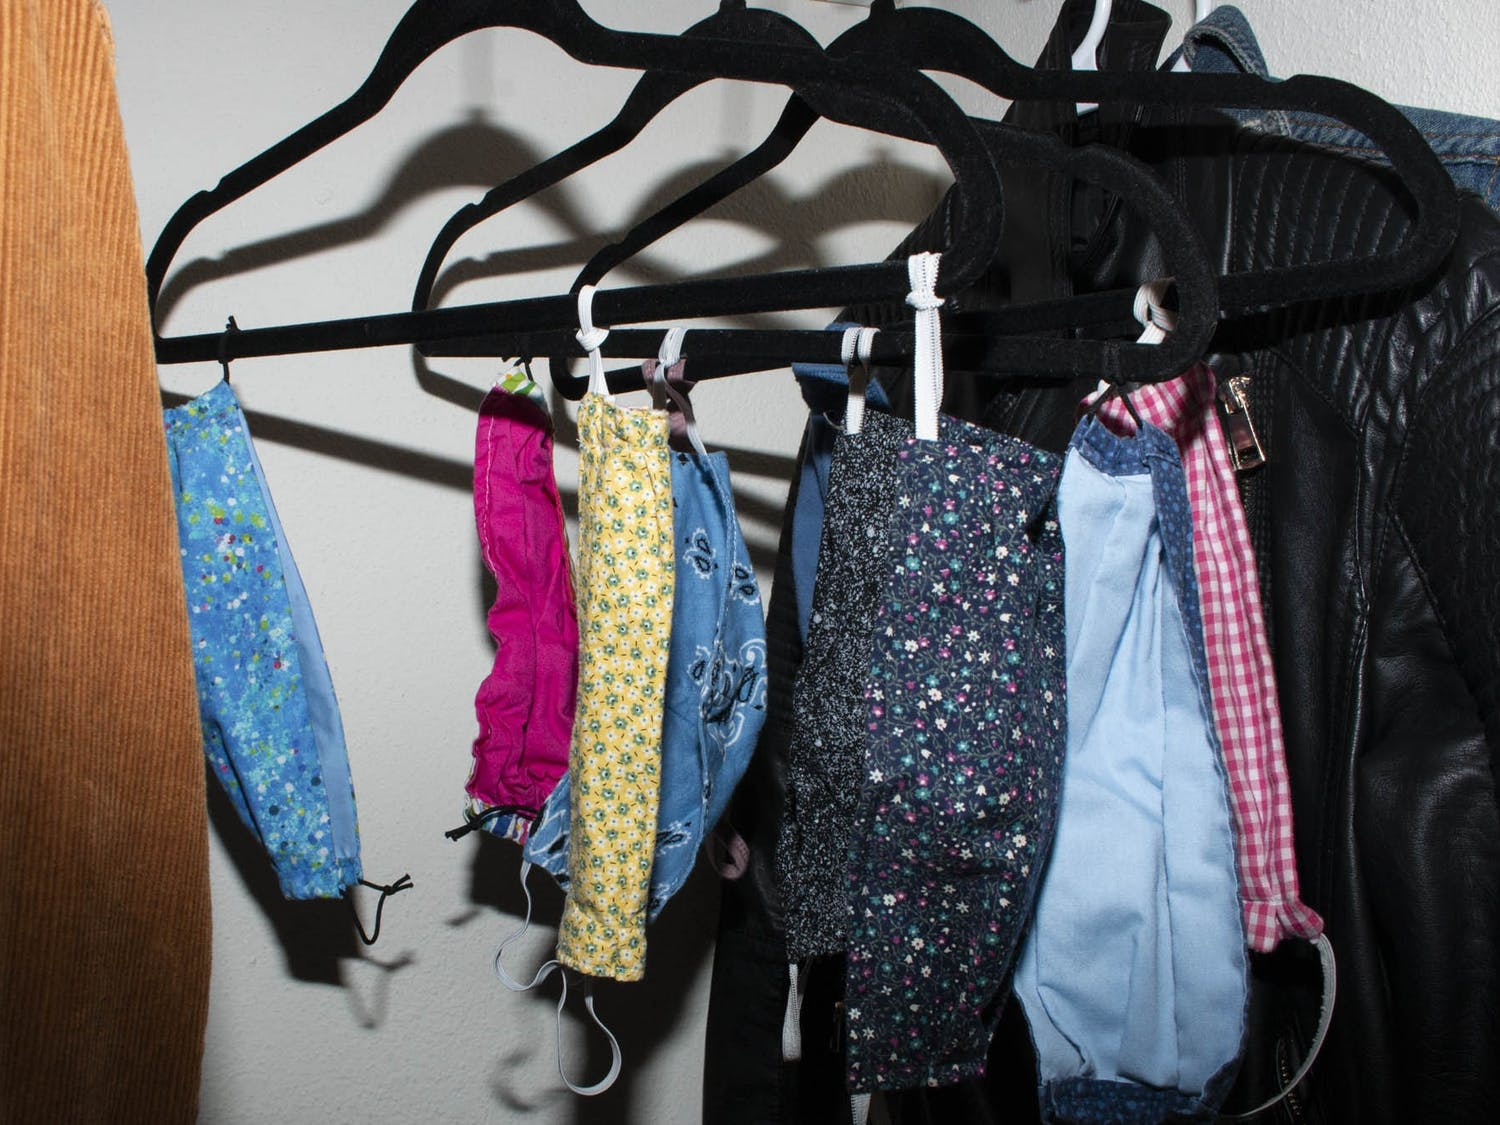 DTH Photo Illustration depicting face masks hanging in a student's closet. Face coverings have become an integral part of 2020's stylebook, and people are taking creative and innovative approaches to how they are worn and used as fashion statements.